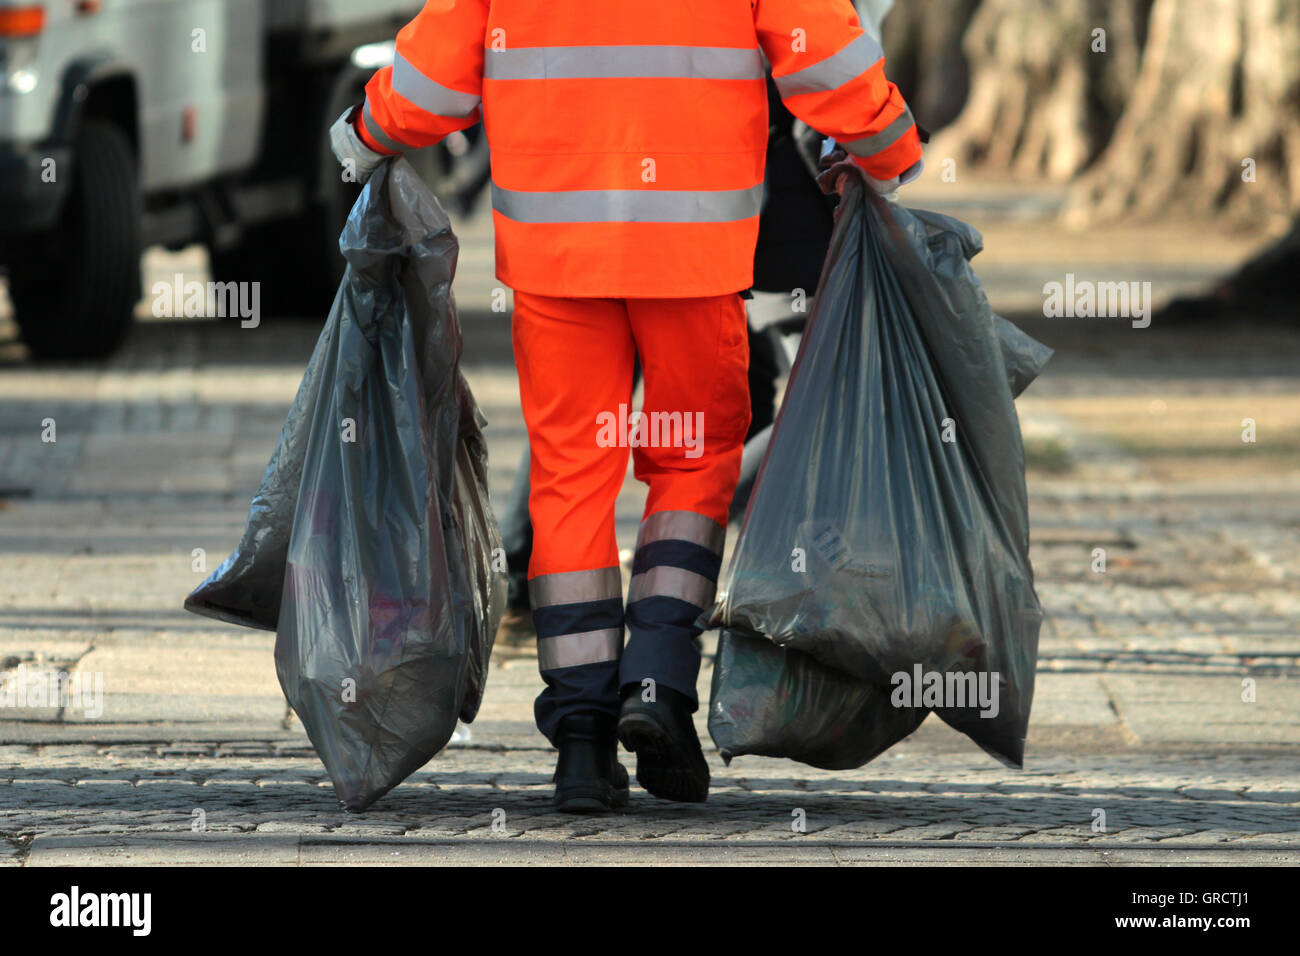 Cologne Sanitation Department Cleaning Up At New Year S Eve - Stock Image